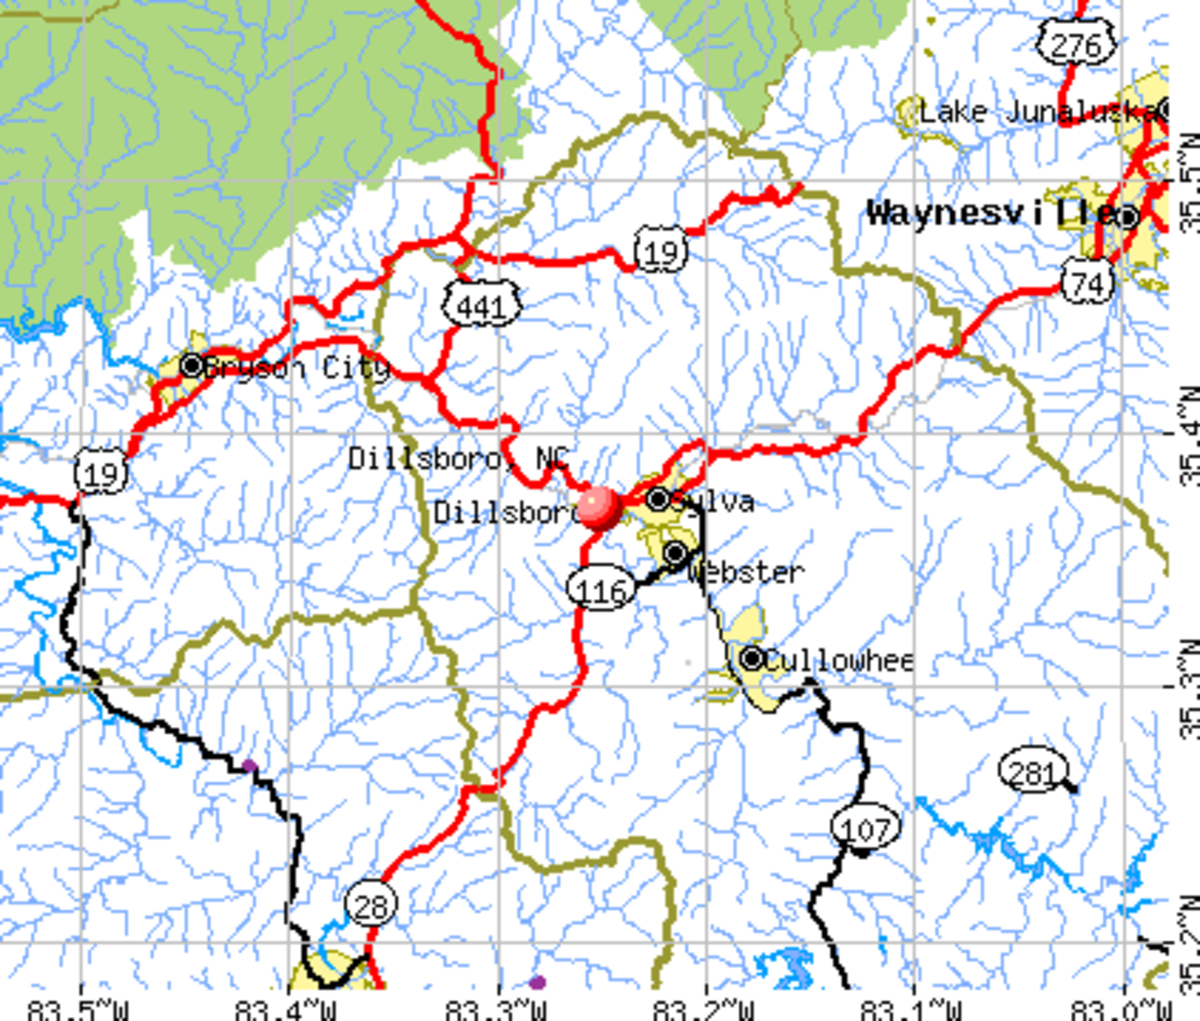 Map Of The Bryson City Dillsboro Area Where The Great Smoky Mountain Railroad Operates